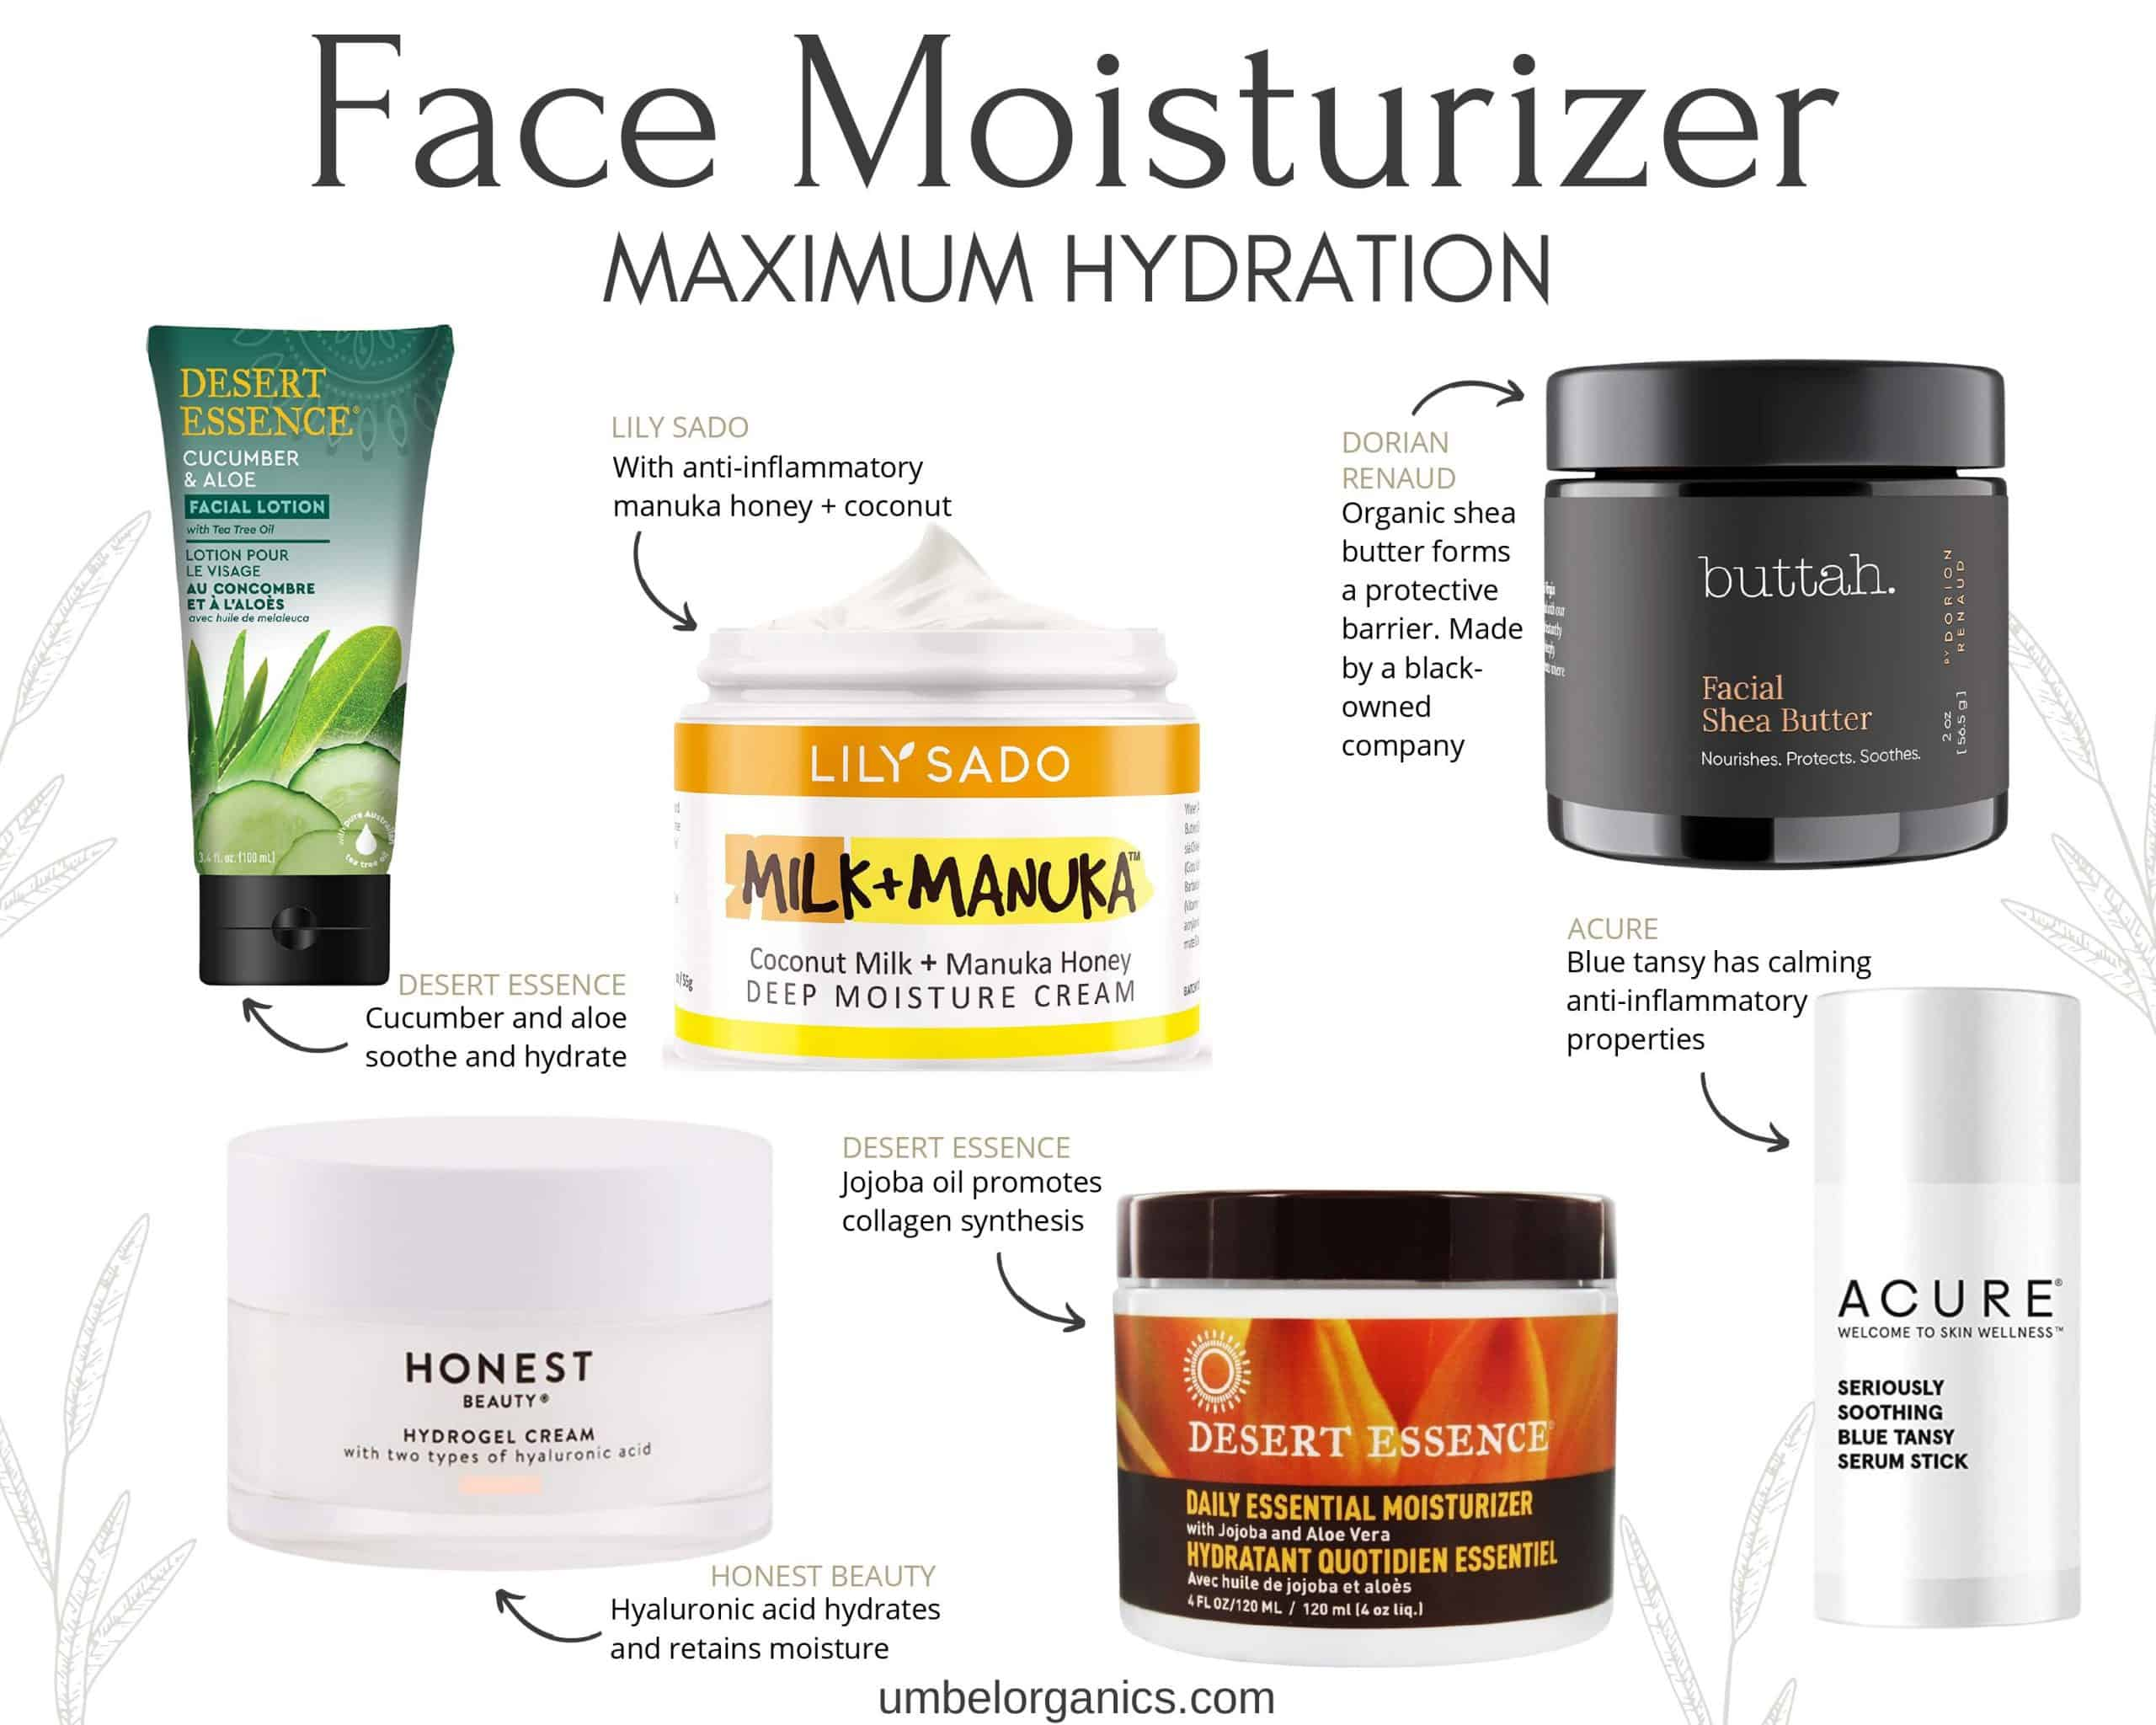 6 Brands of clean + natural hydrating Face Moisturizer